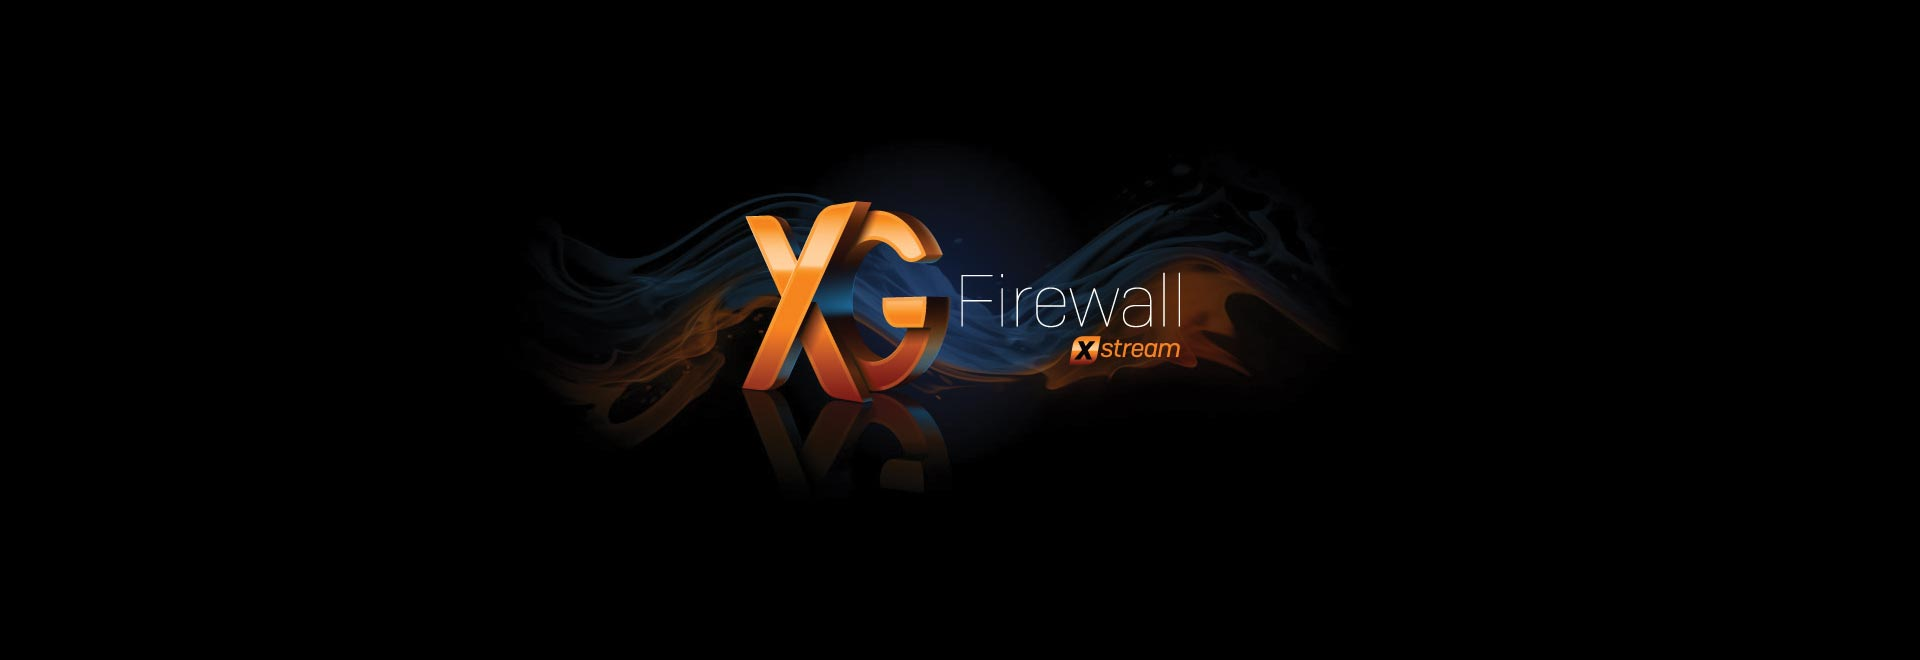 sophos-xgfirewall background